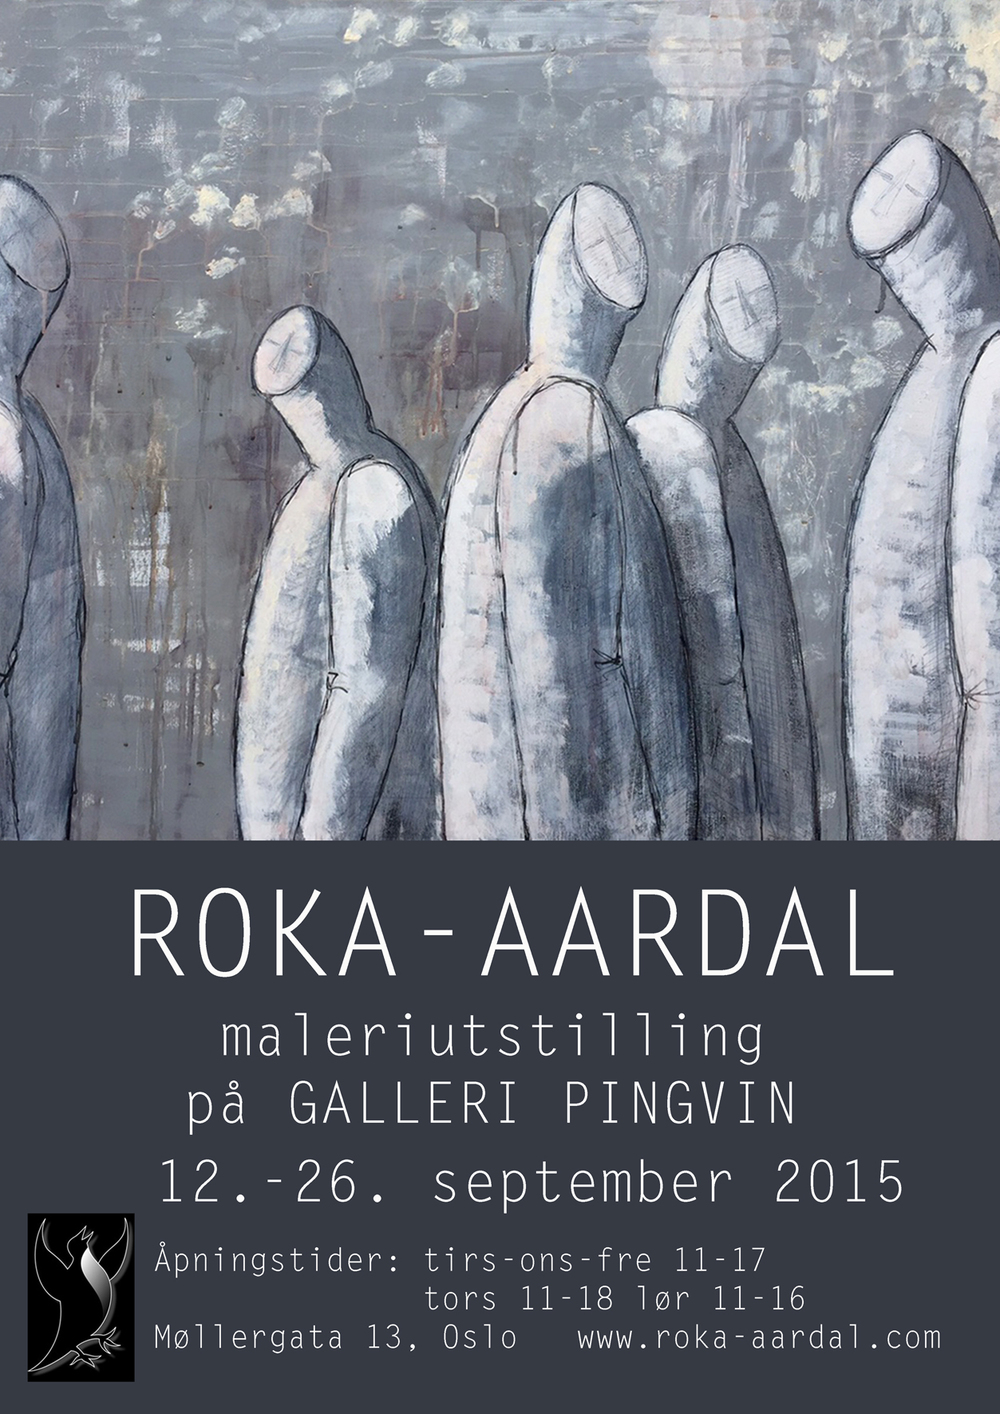 I am quite happy with my layout on the new poster & invitation for the exhibition at galleri Pingvin.